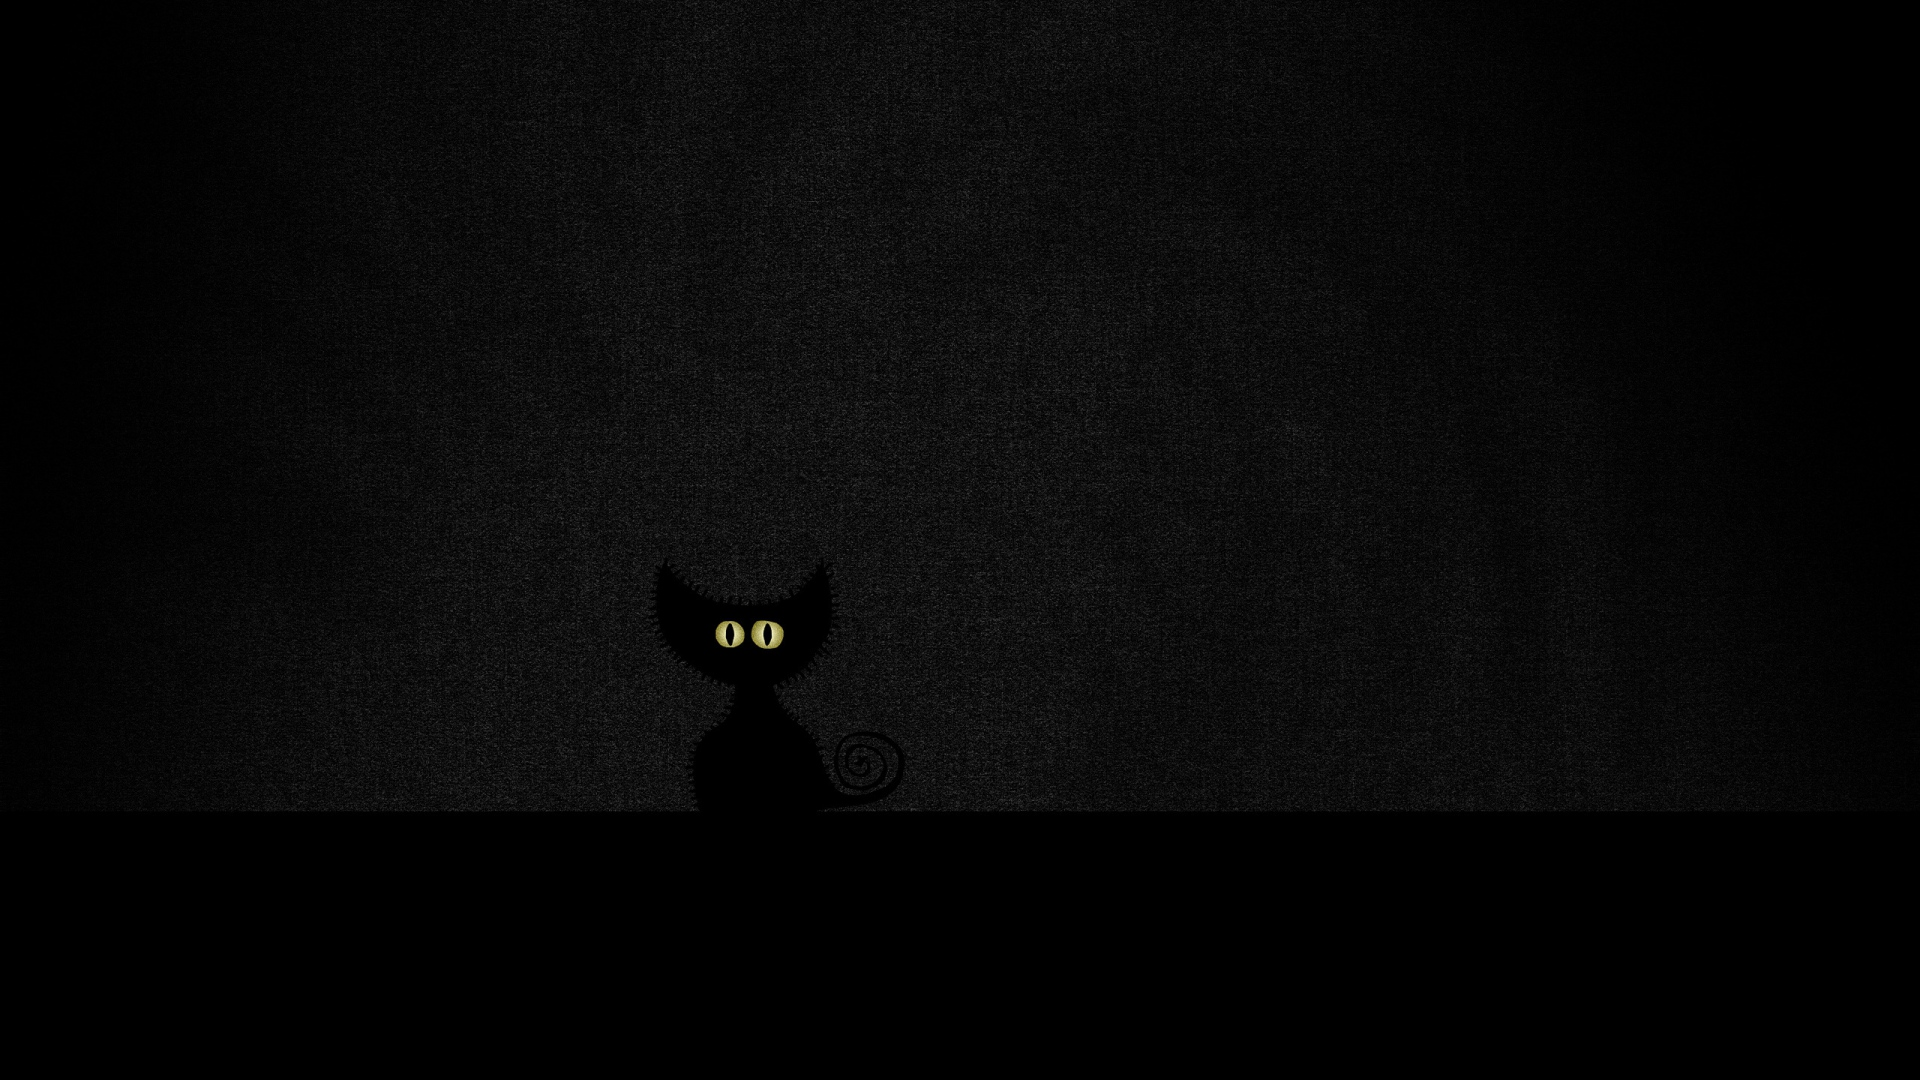 Download Wallpaper 1920x1080 eyes, minimalism, black, cat ...